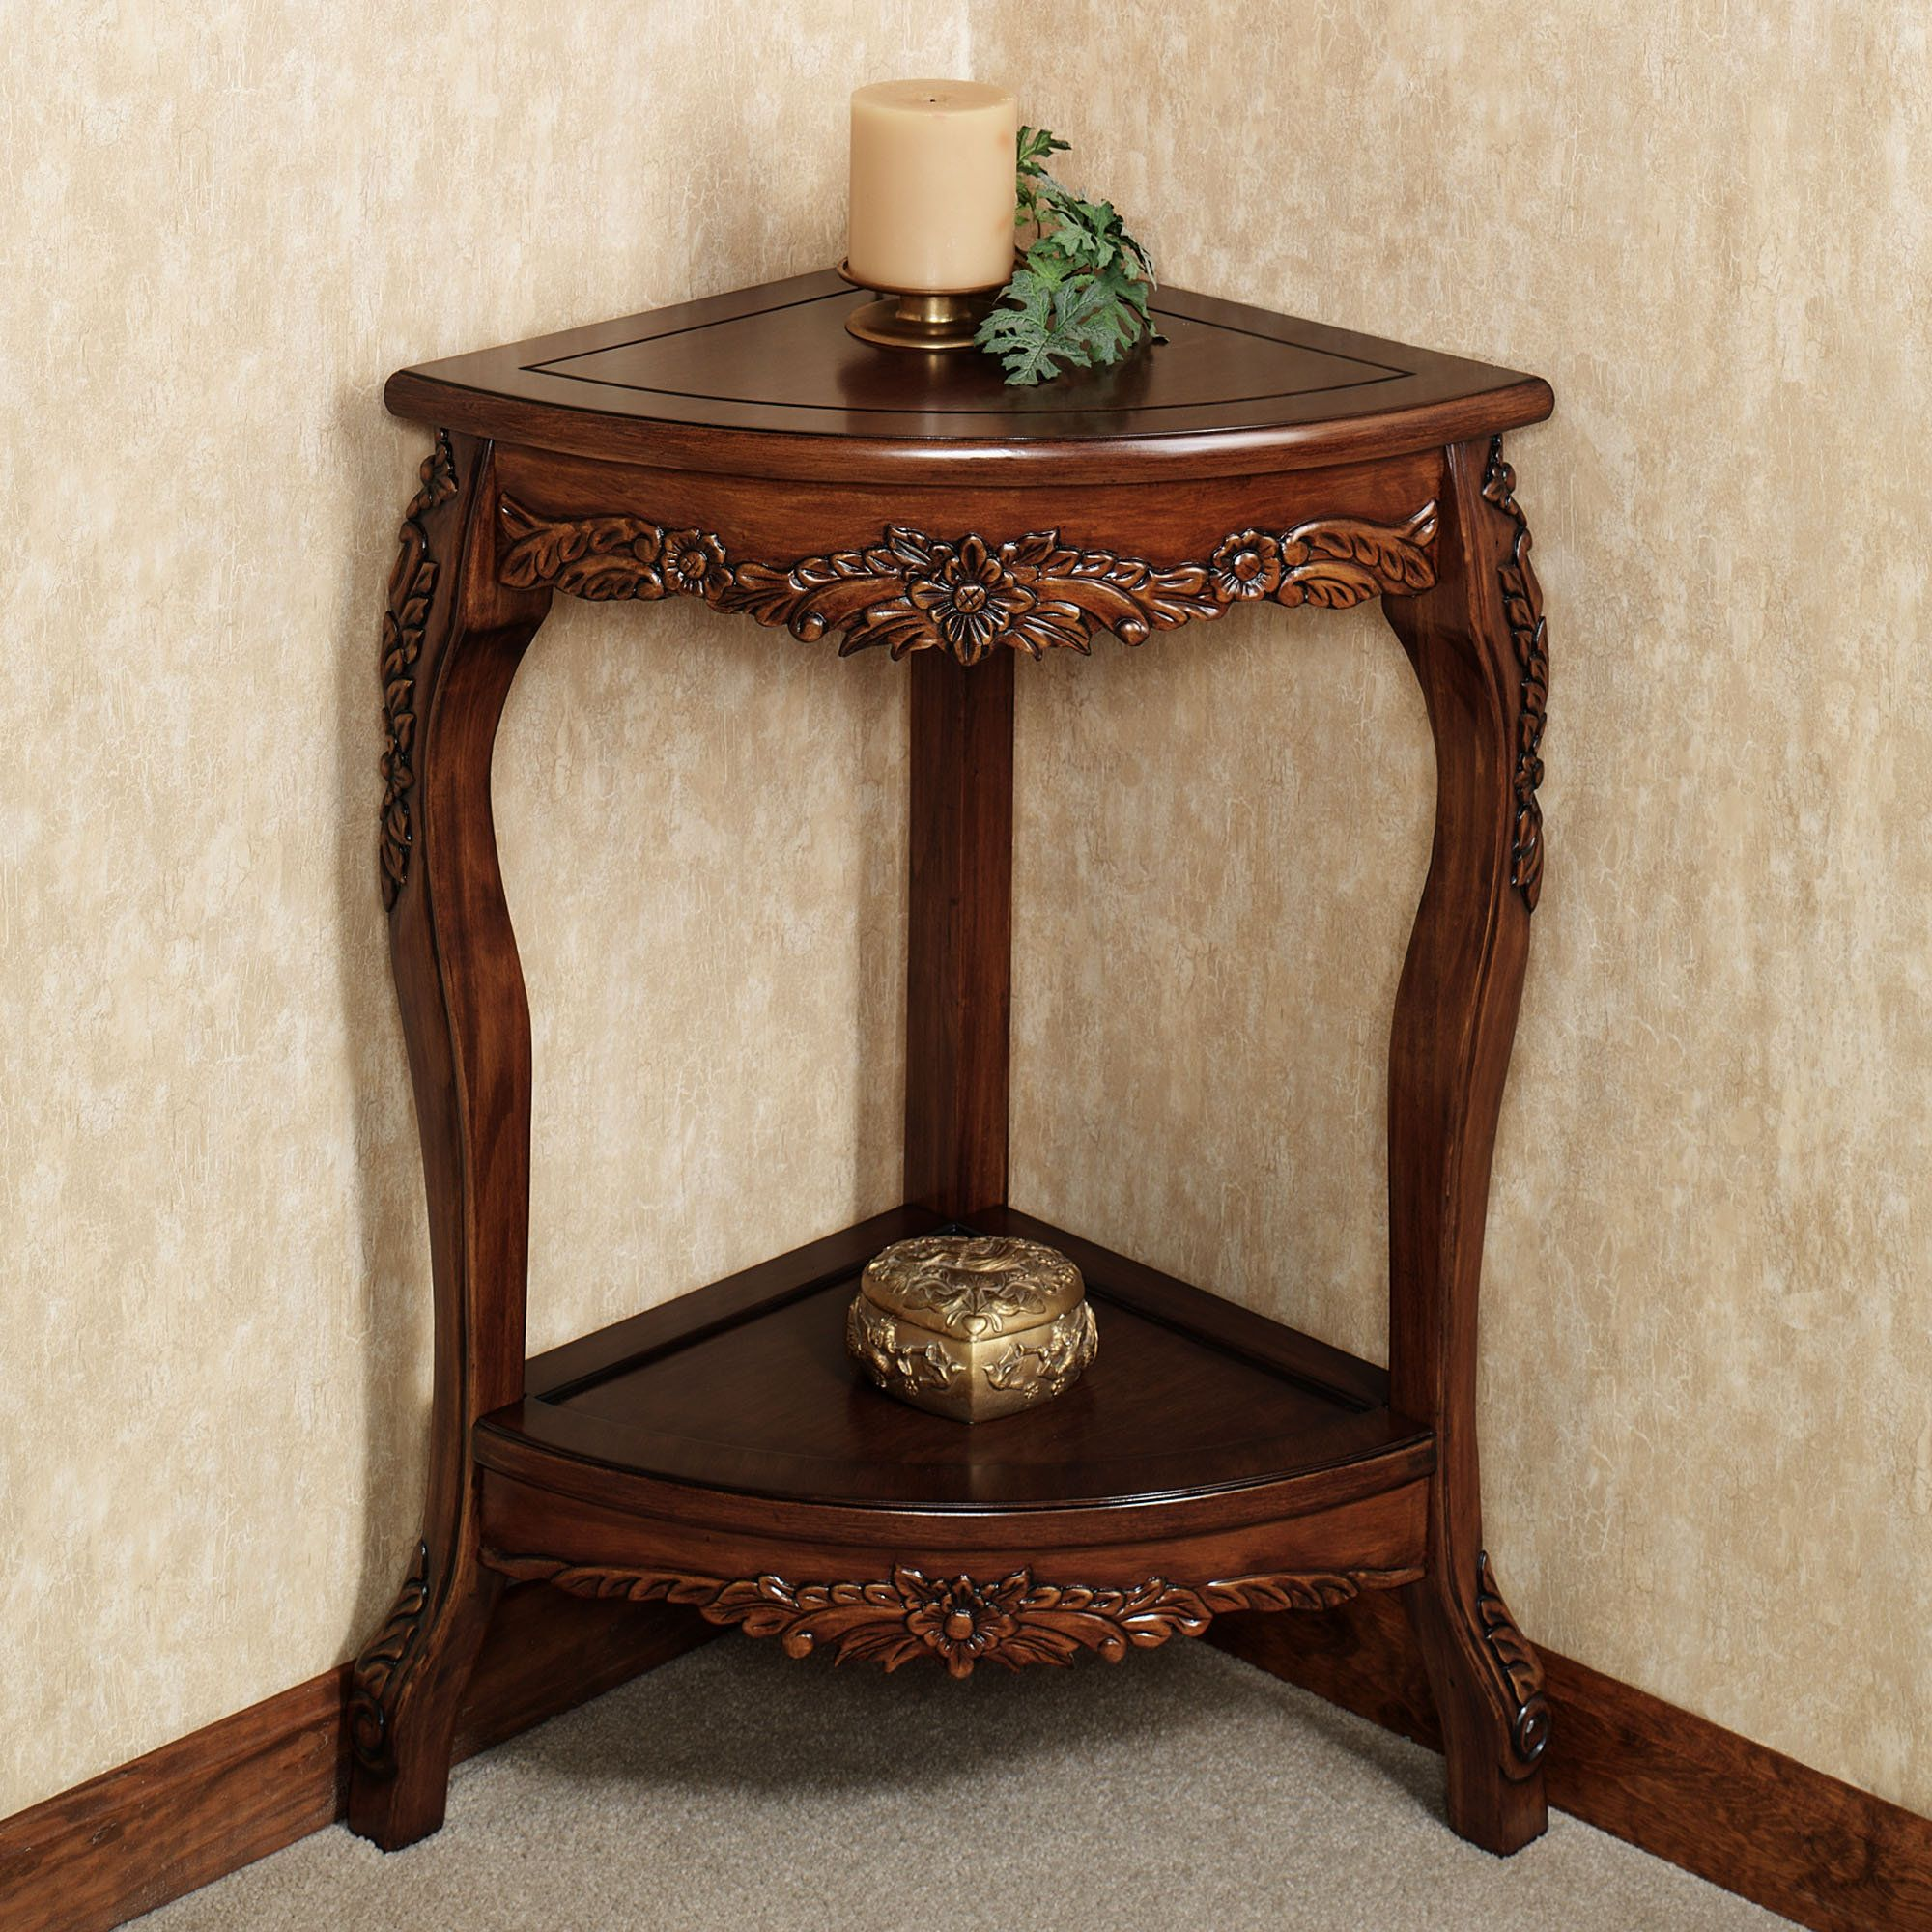 Corner Table Designs For Living Room | Keepyourmindclean Ideas